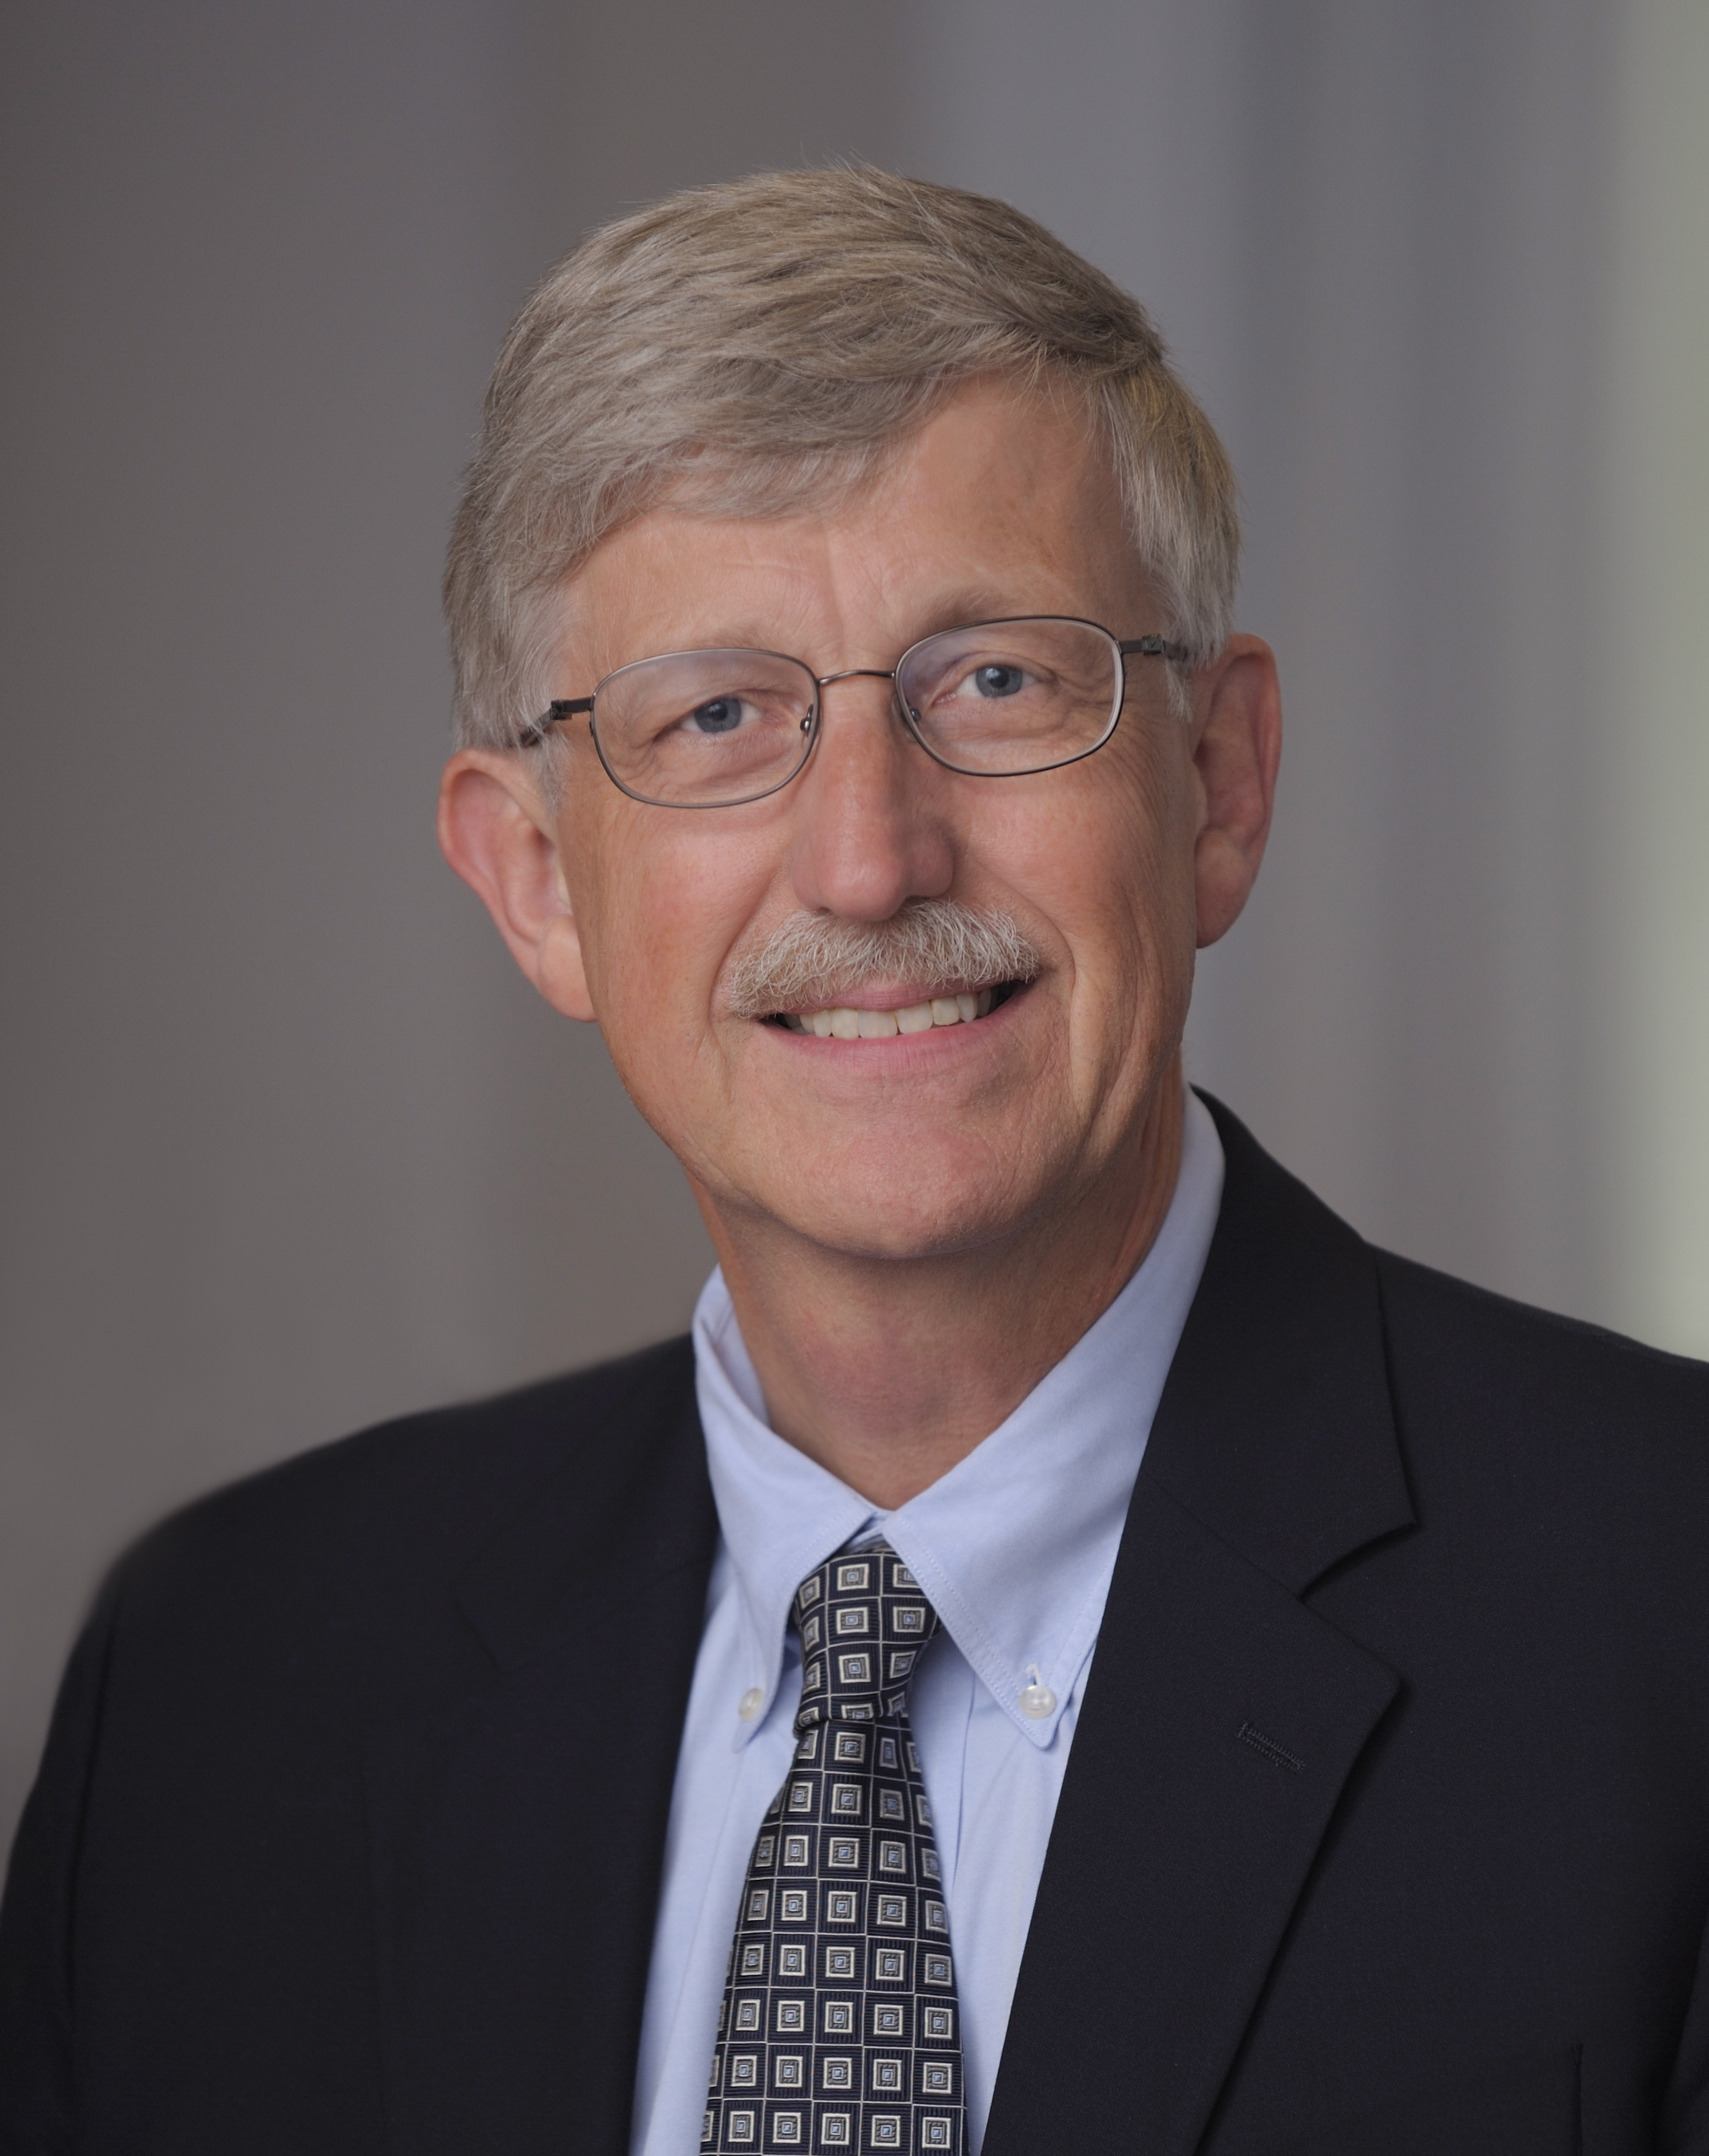 Dr. Francis Collins, Director of the National Institutes of Health